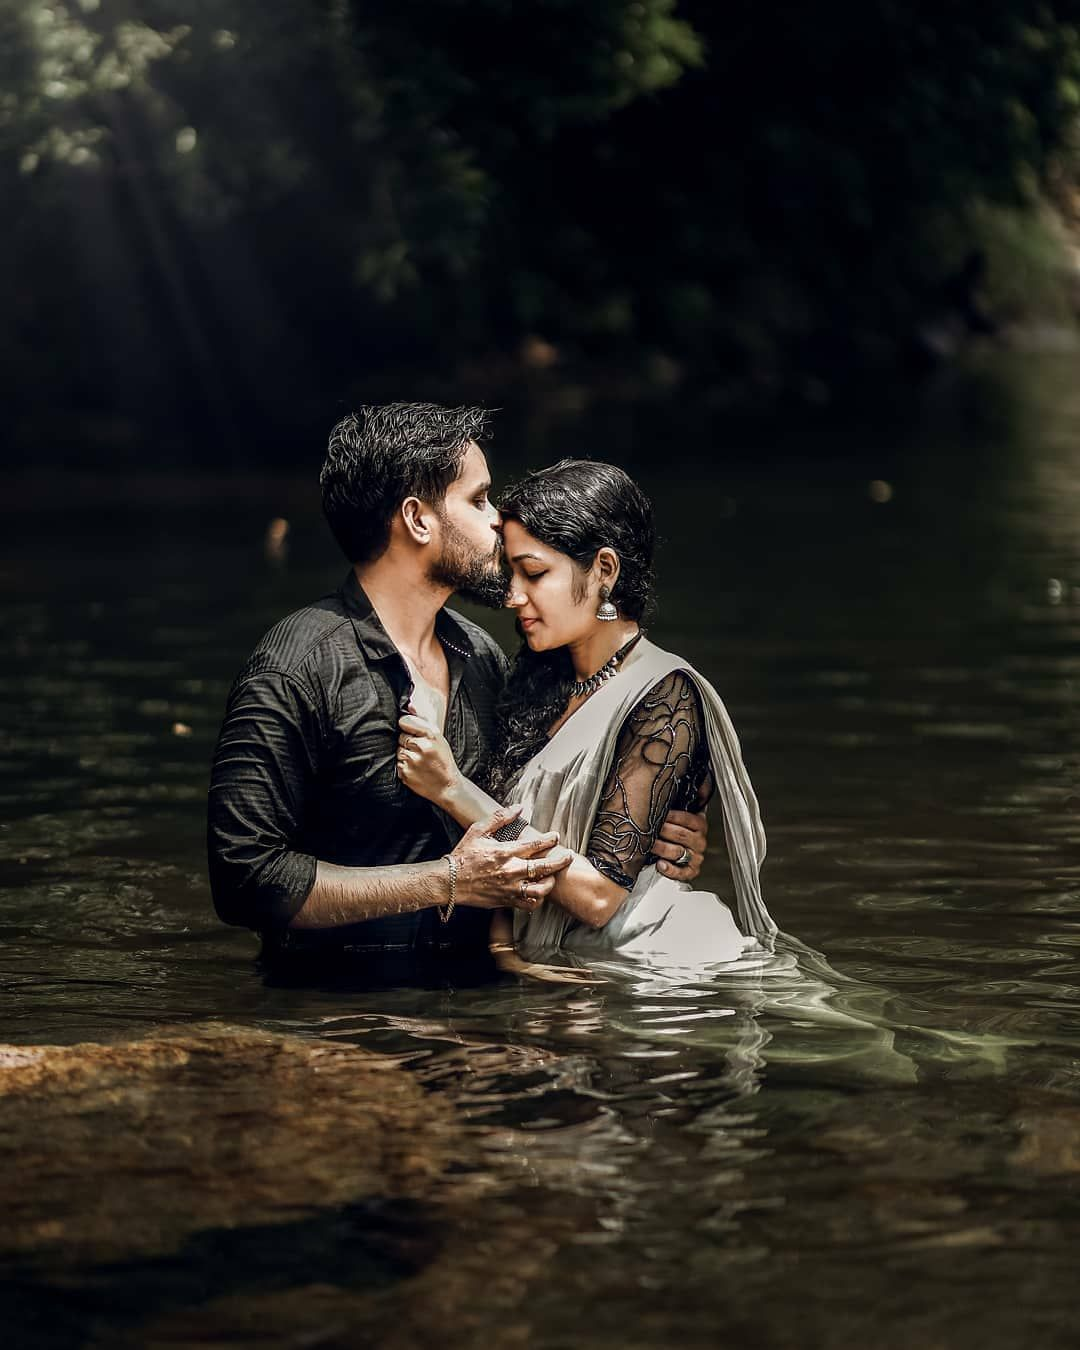 romantic photoshoot ideas in the rain